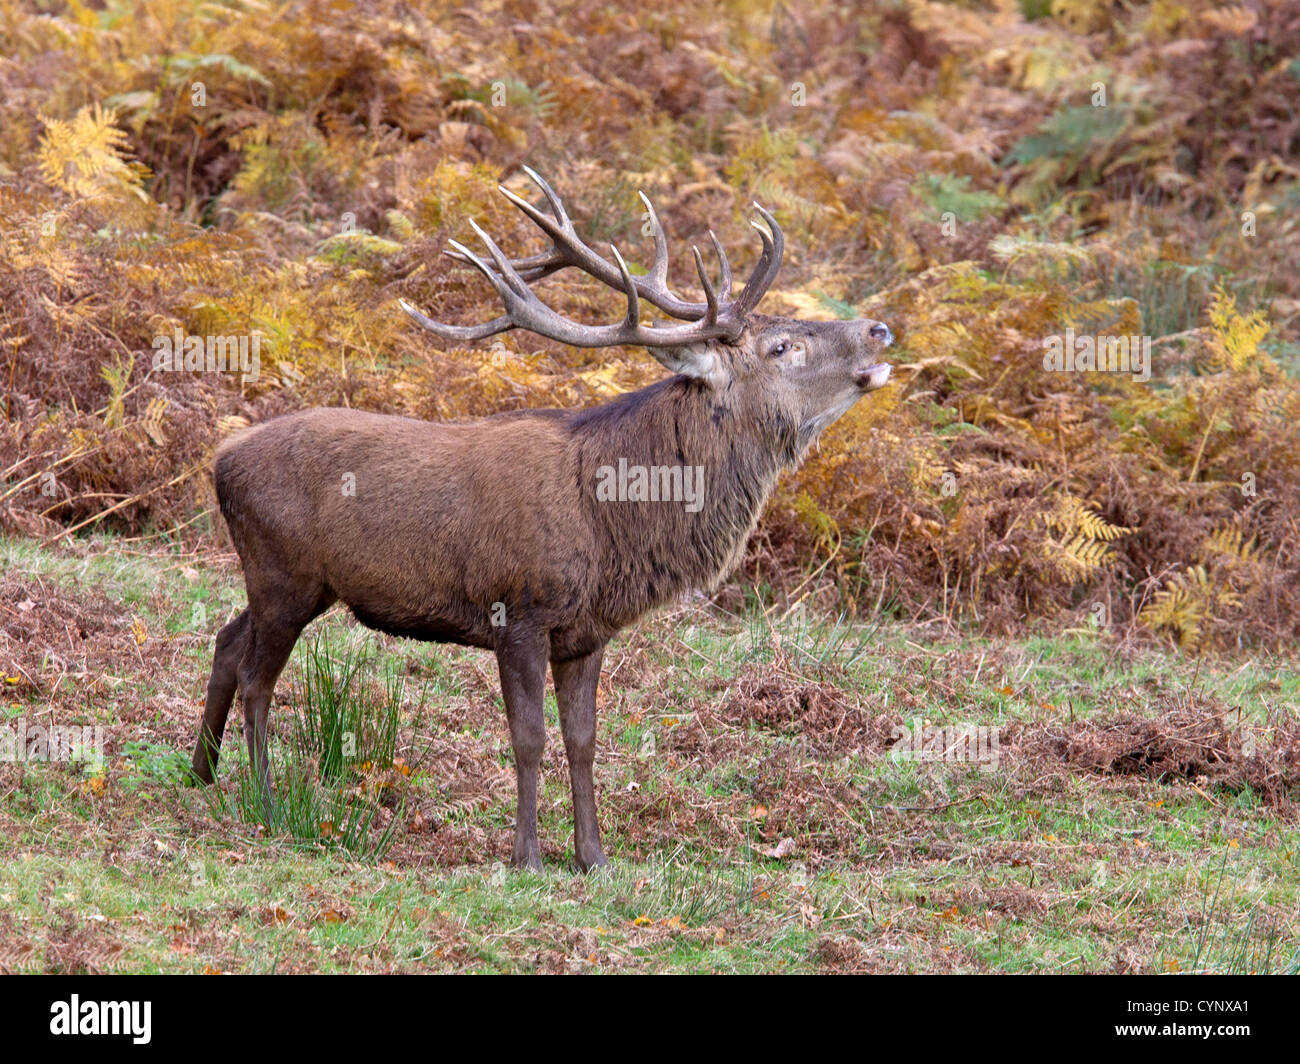 Red deer stag bellowing during rut - Stock Image